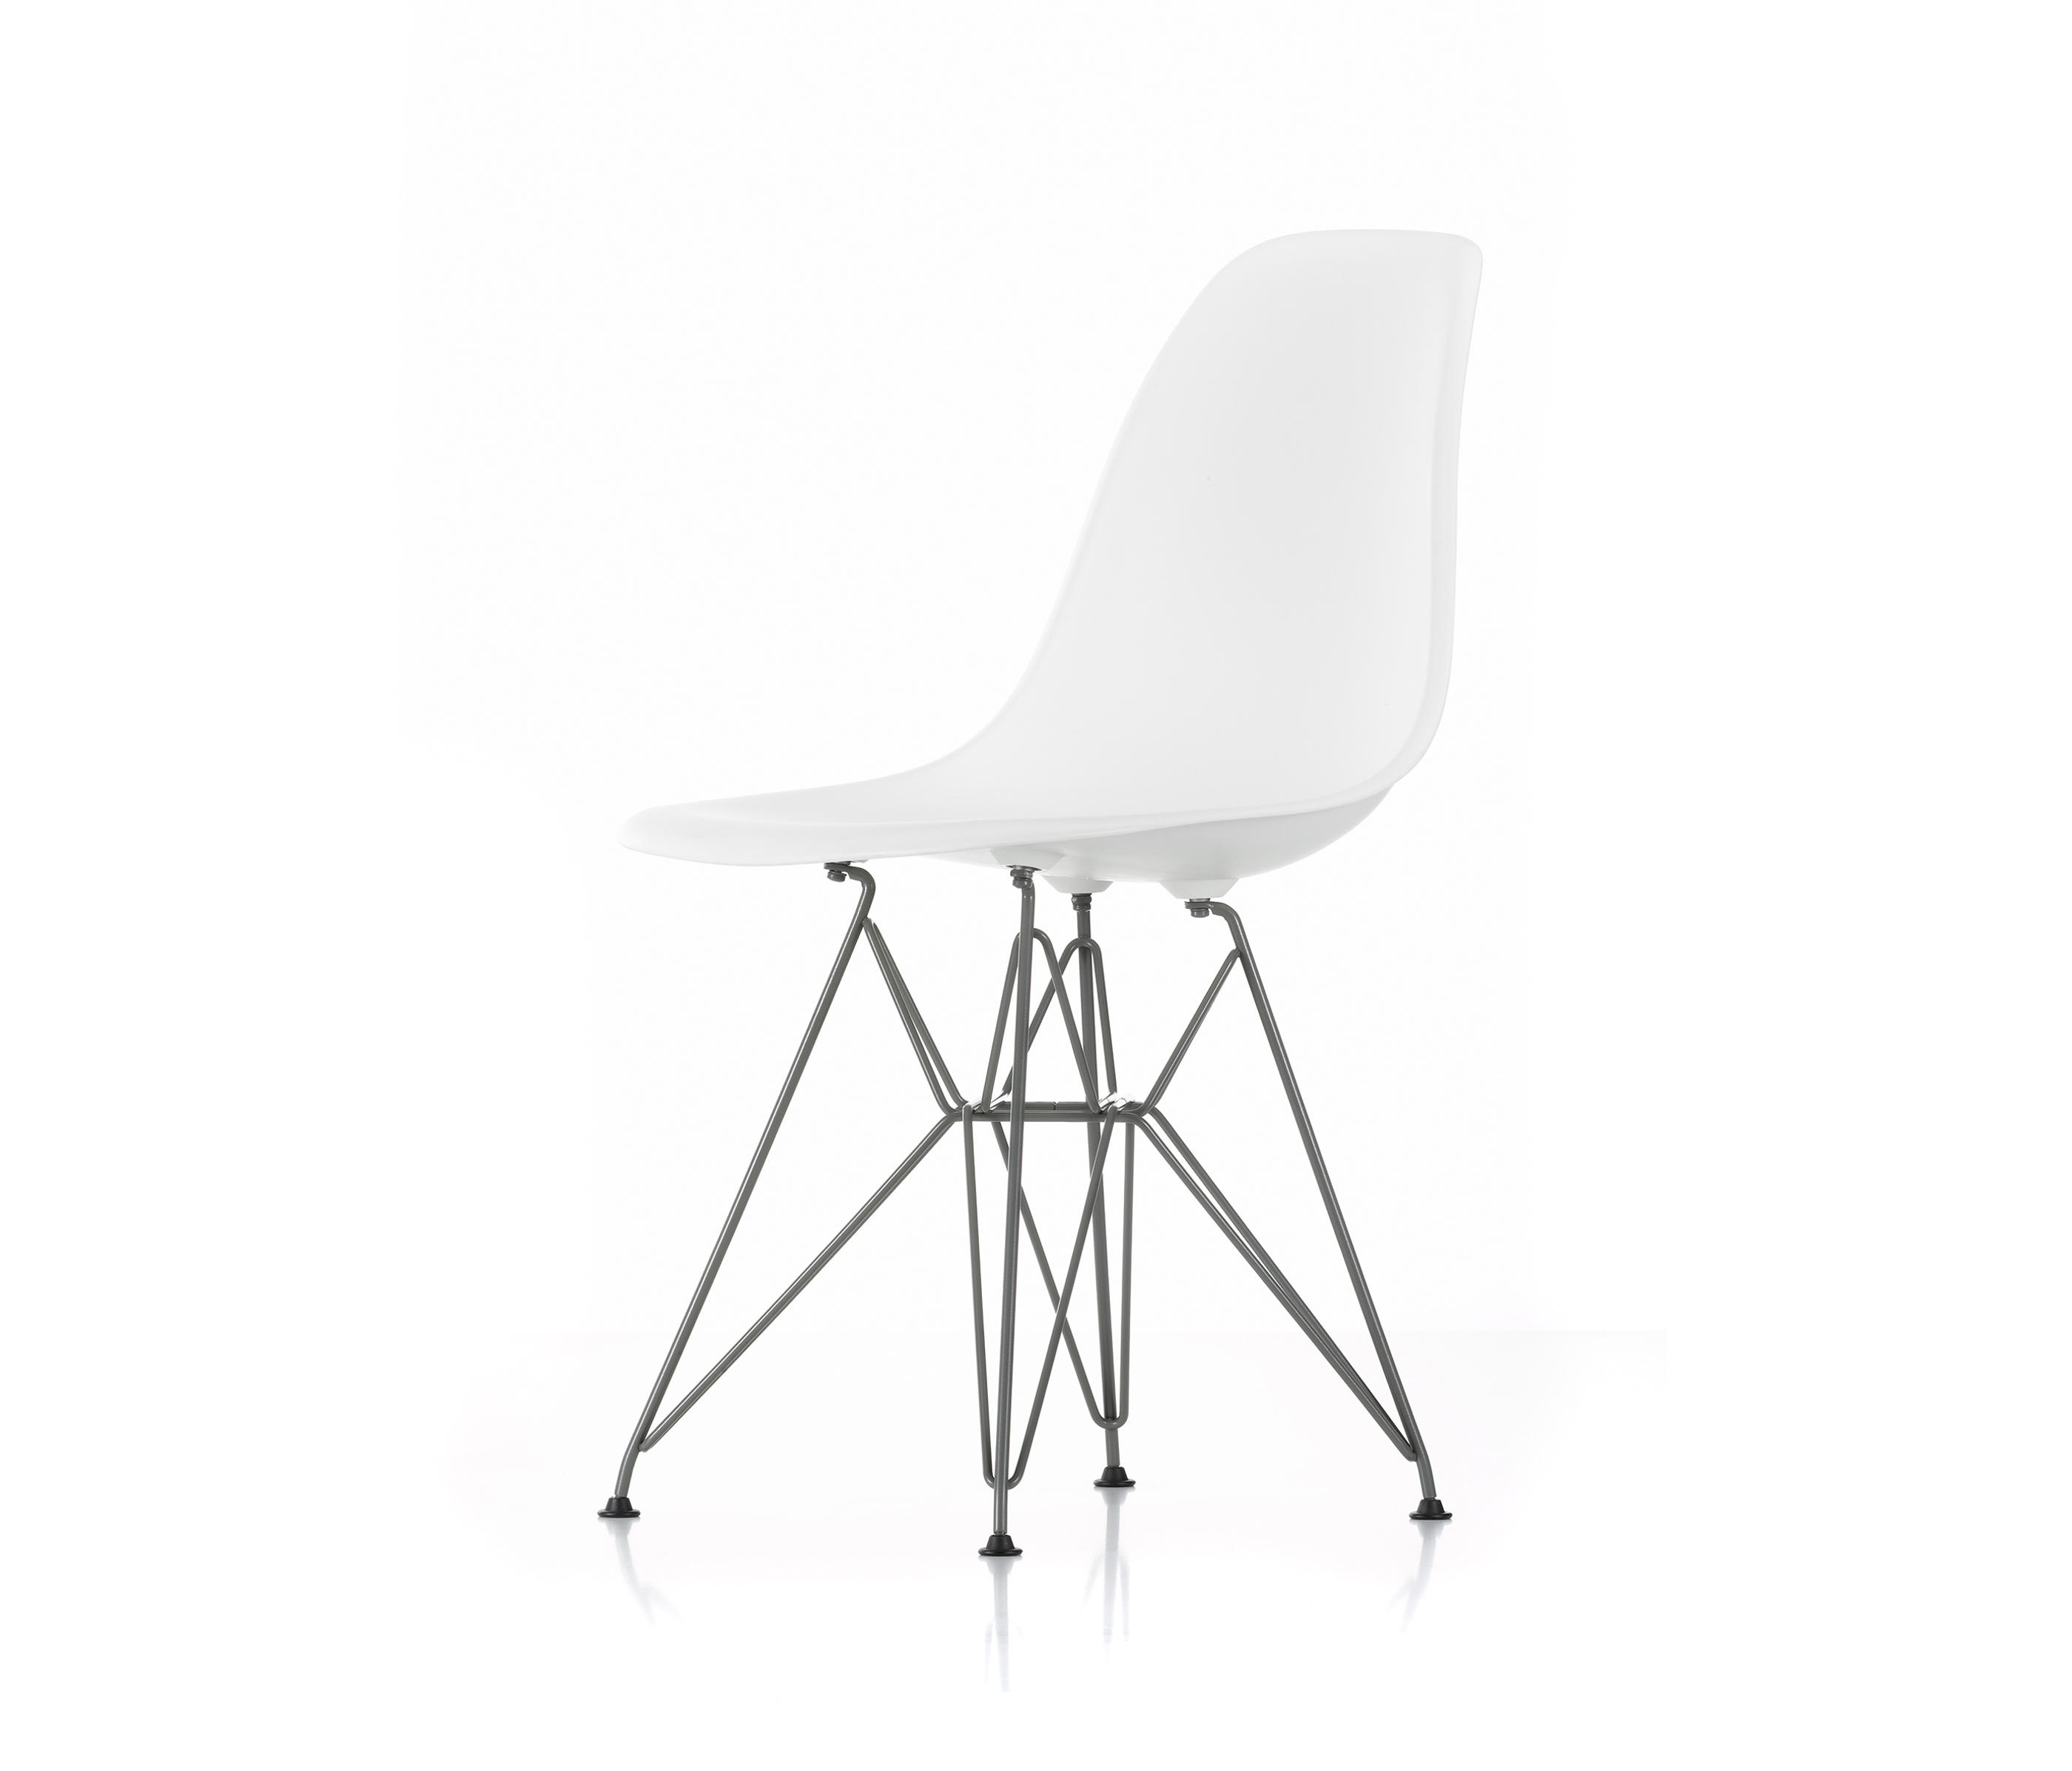 Eames Plastic Side Chair : eames plastic side chair dsr multipurpose chairs from vitra architonic ~ Bigdaddyawards.com Haus und Dekorationen